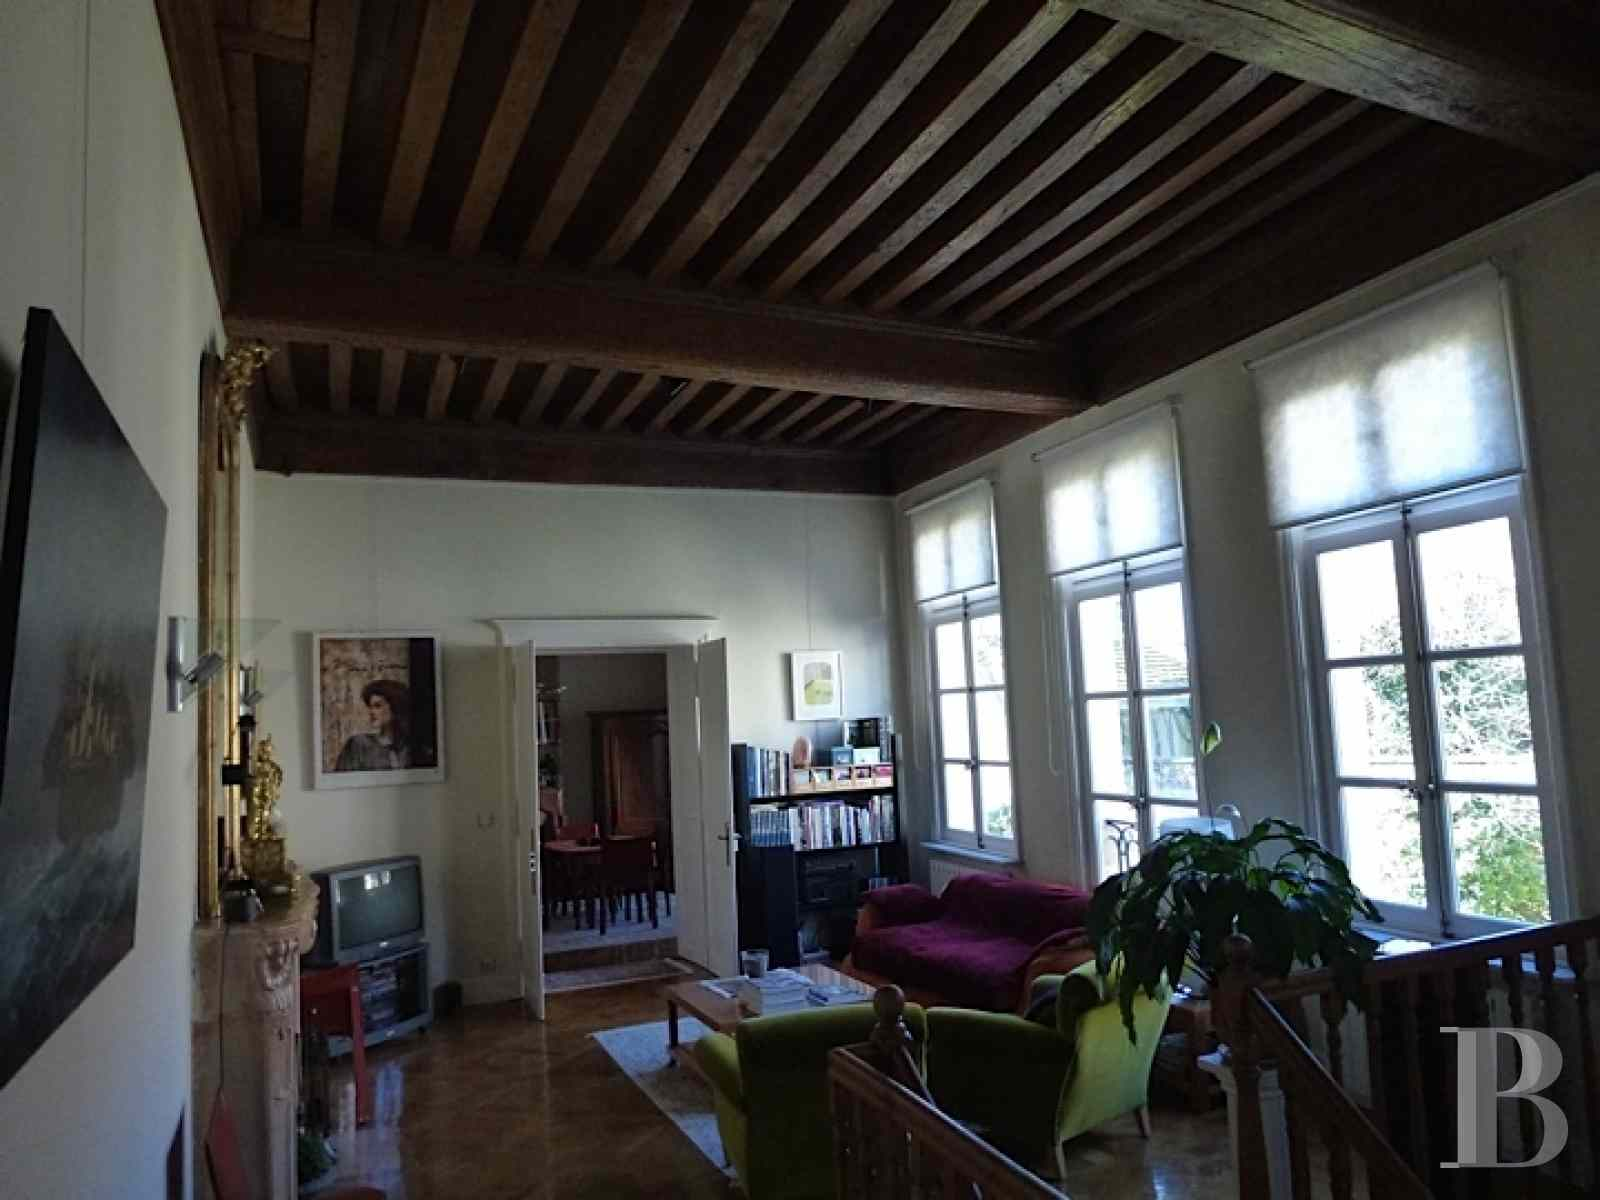 mansion houses for sale France burgundy flat garden - 5 zoom